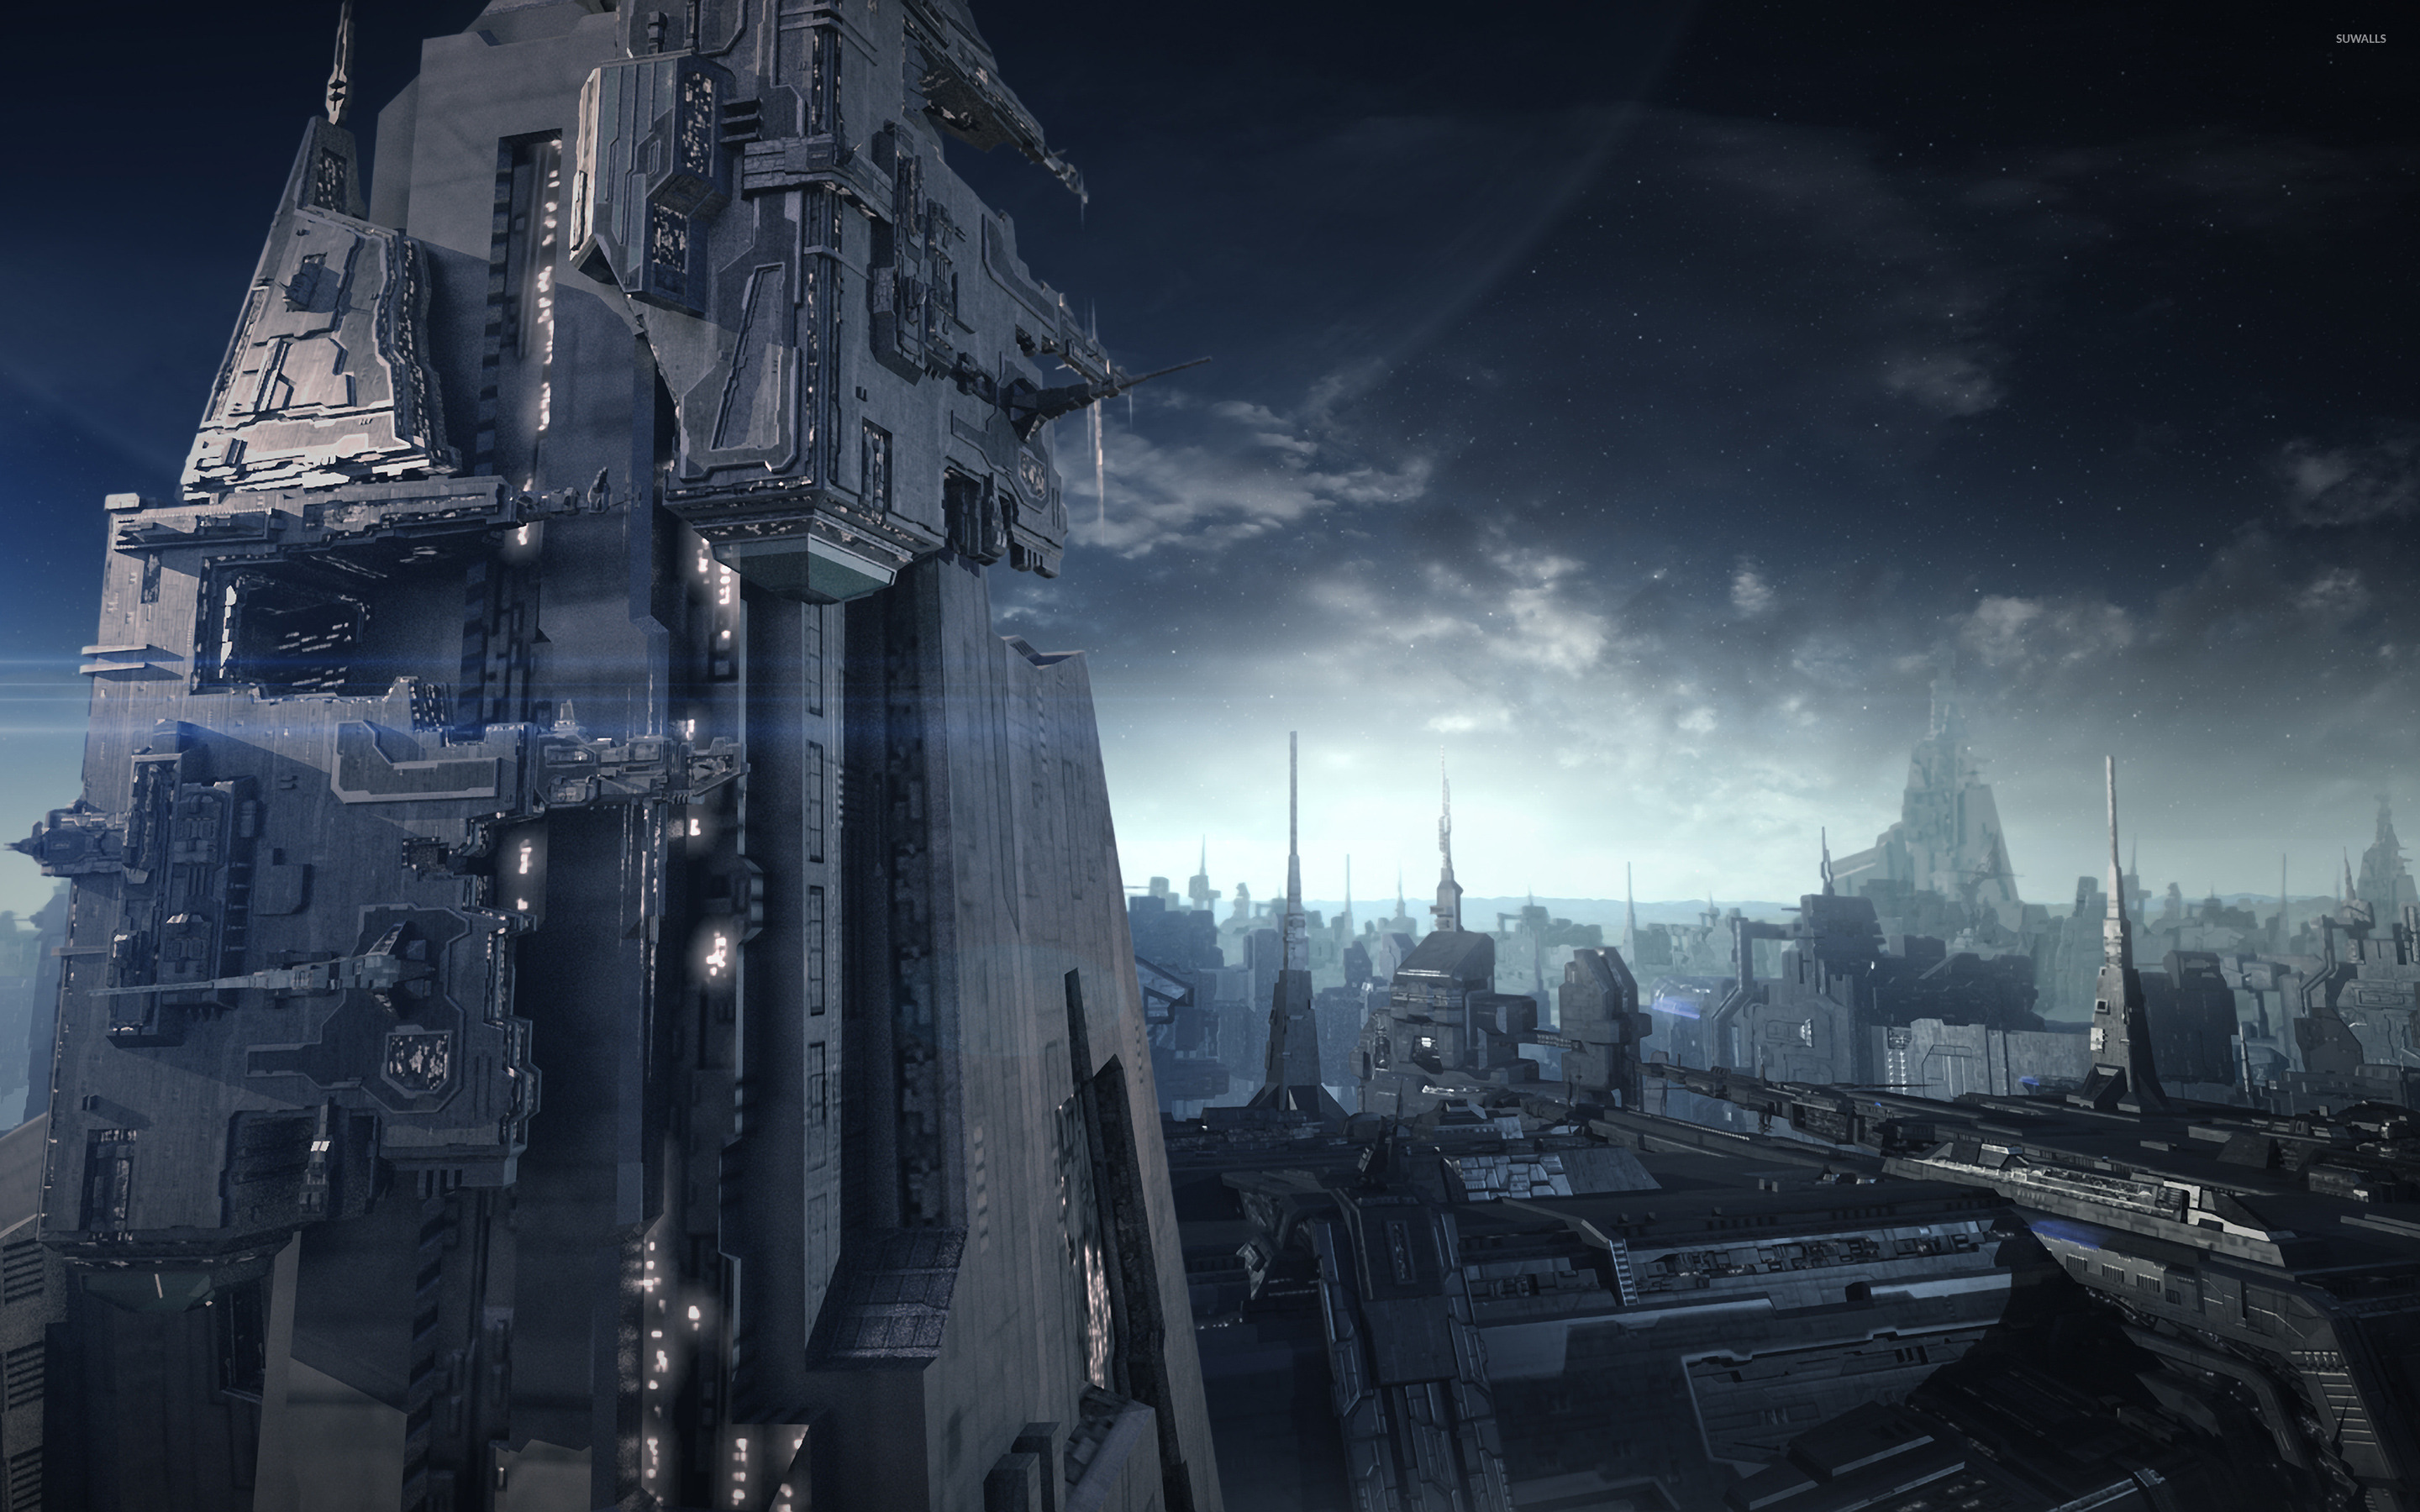 40k Quotes Wallpapers Eve Online 2 Wallpaper Game Wallpapers 32150